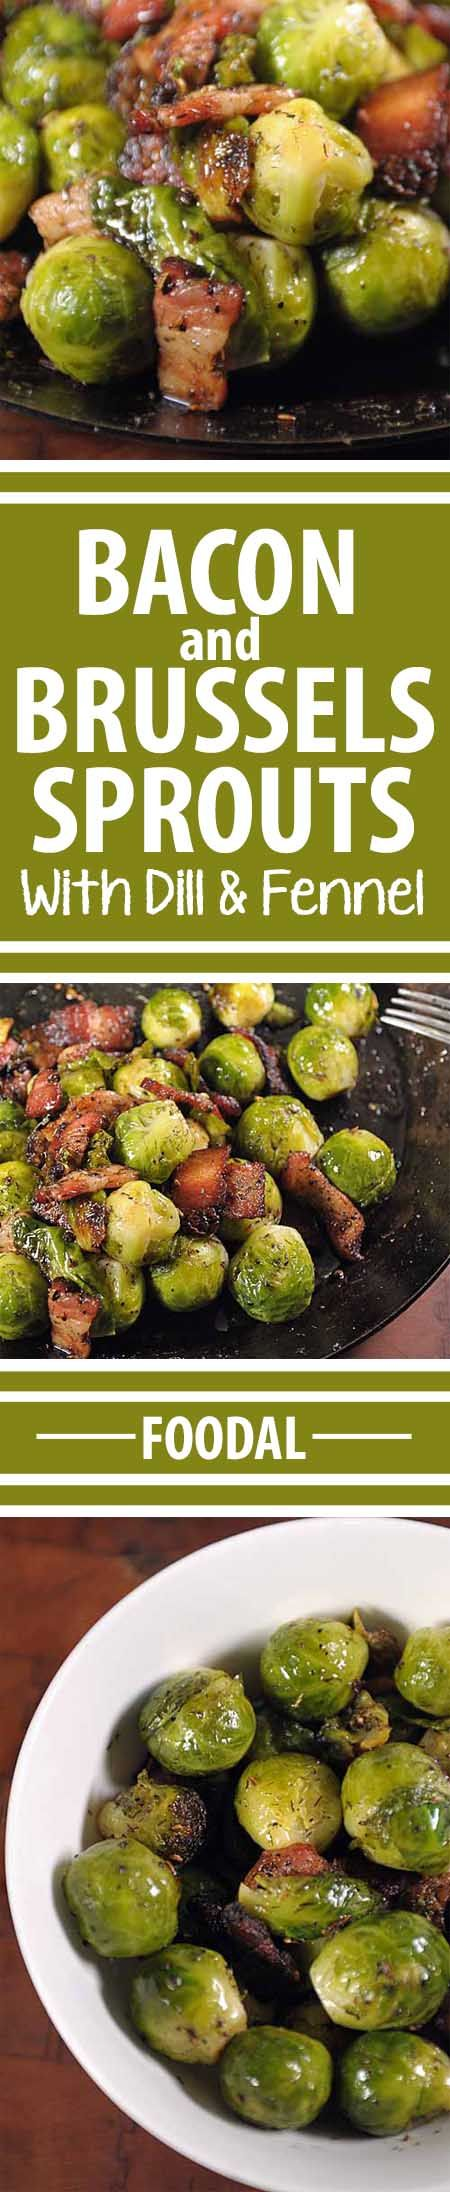 "Have you always thought that Brussels sprouts were ""icky?"" If so, give this recipe a whirl. The added bacon gives it the flavor and texture that makes it very tasty. And the added fats helps your body absorb the nutrients packed into the sprouts. And that is what is called a win-win! Get the recipe here: http://foodal.com/recipes/veggies/organic-brussels-sprouts-sauteed-with-bacon/"